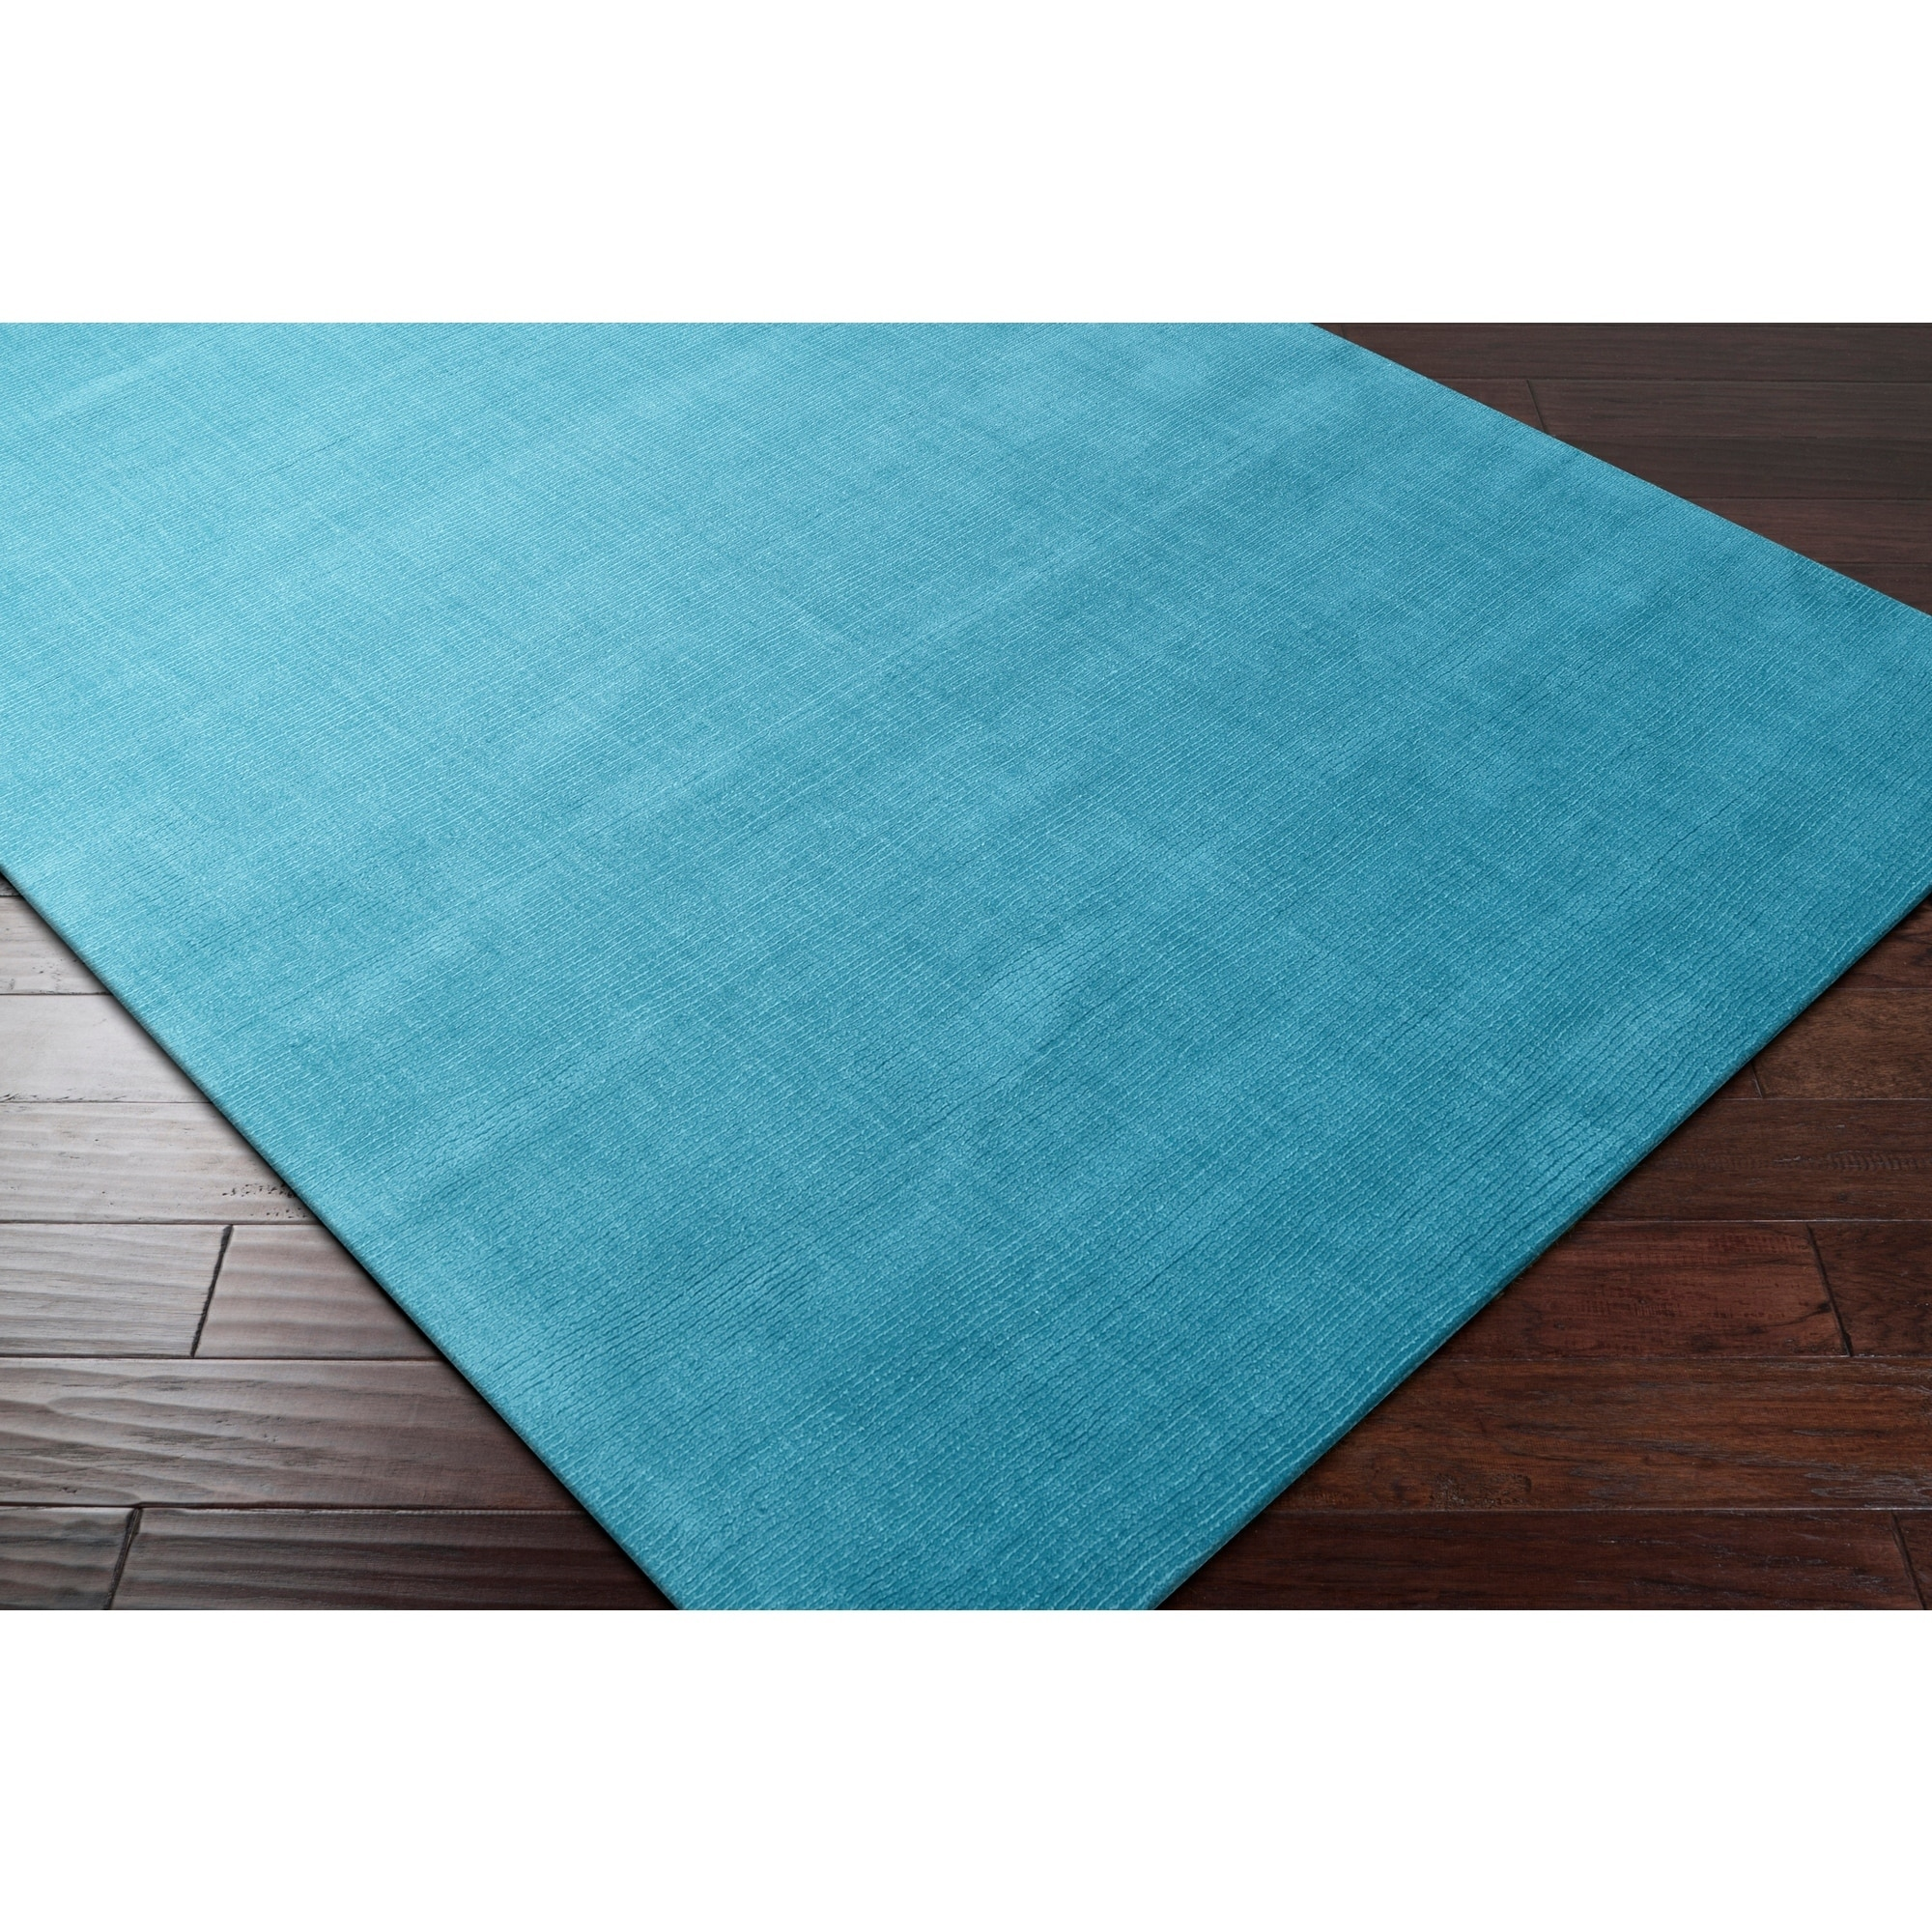 Hand Crafted Teal Blue Solid Casual Ridges Wool Area Rug 2 6 X 8 Runner Surplus Wool Area Rugs Area Rugs Area Rugs For Sale